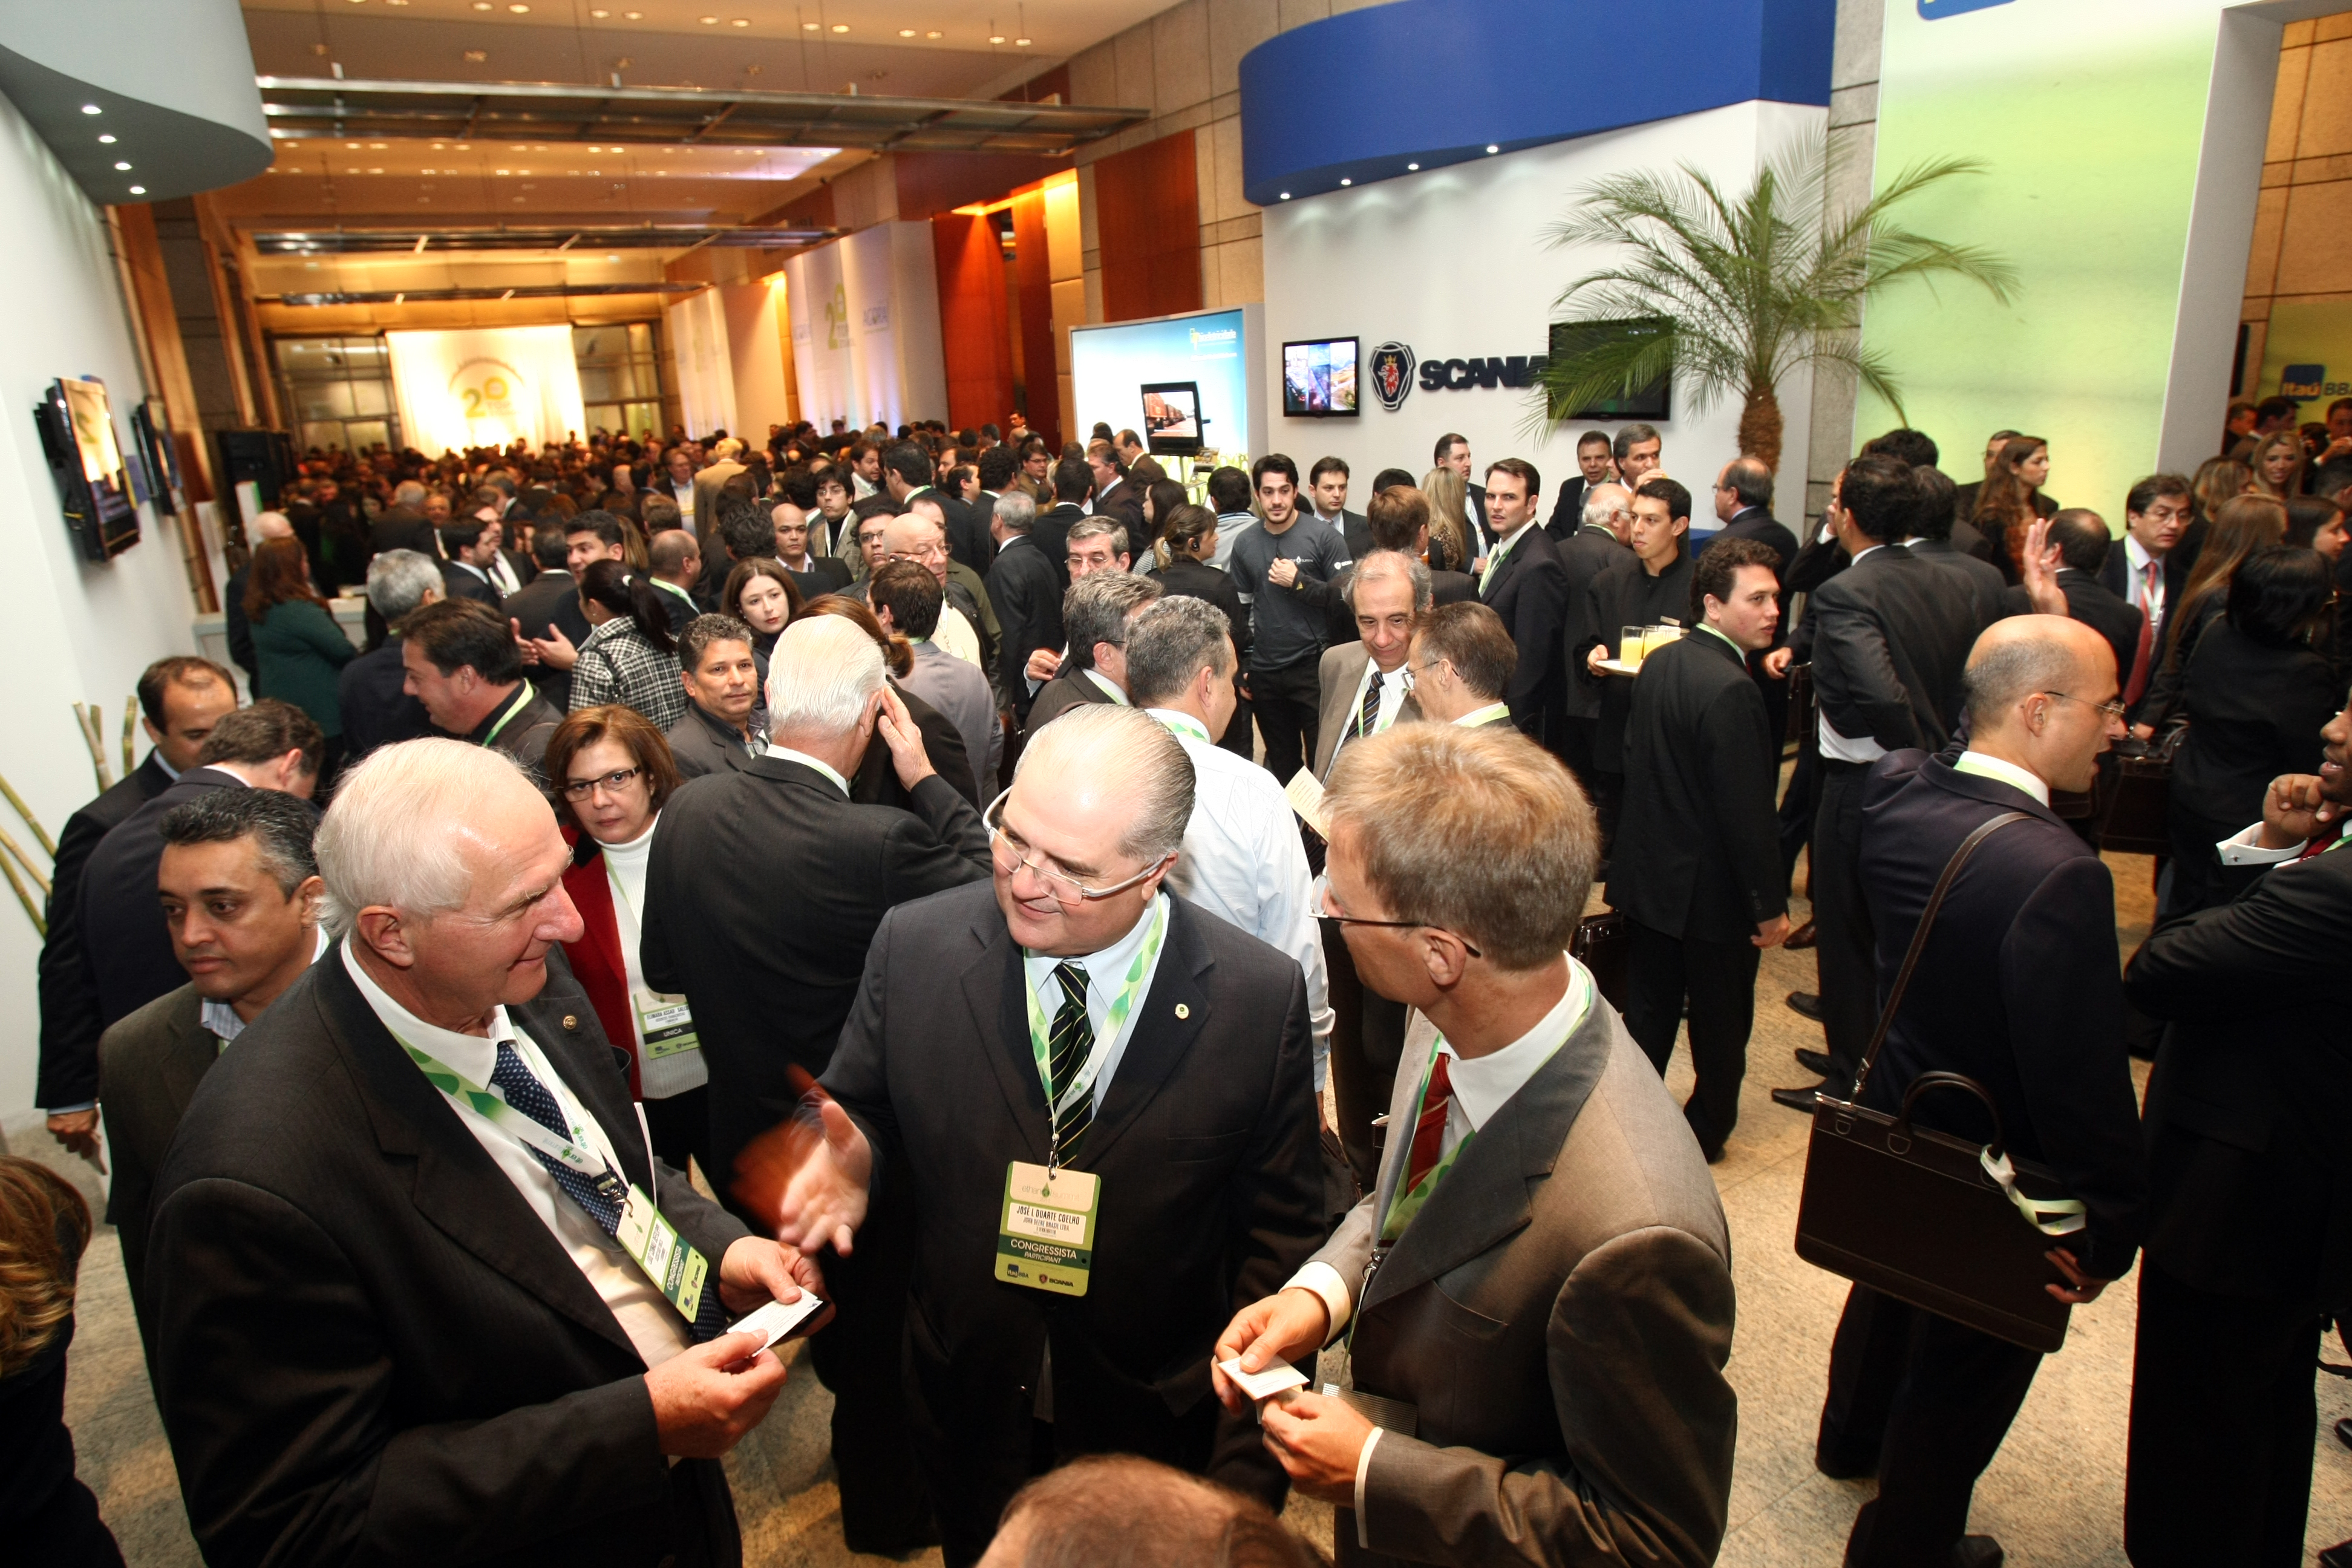 2¼ Top Ethanol Local: Hyatt Data: 06/06/2011 Foto: Mario Miranda/Agncia Foto